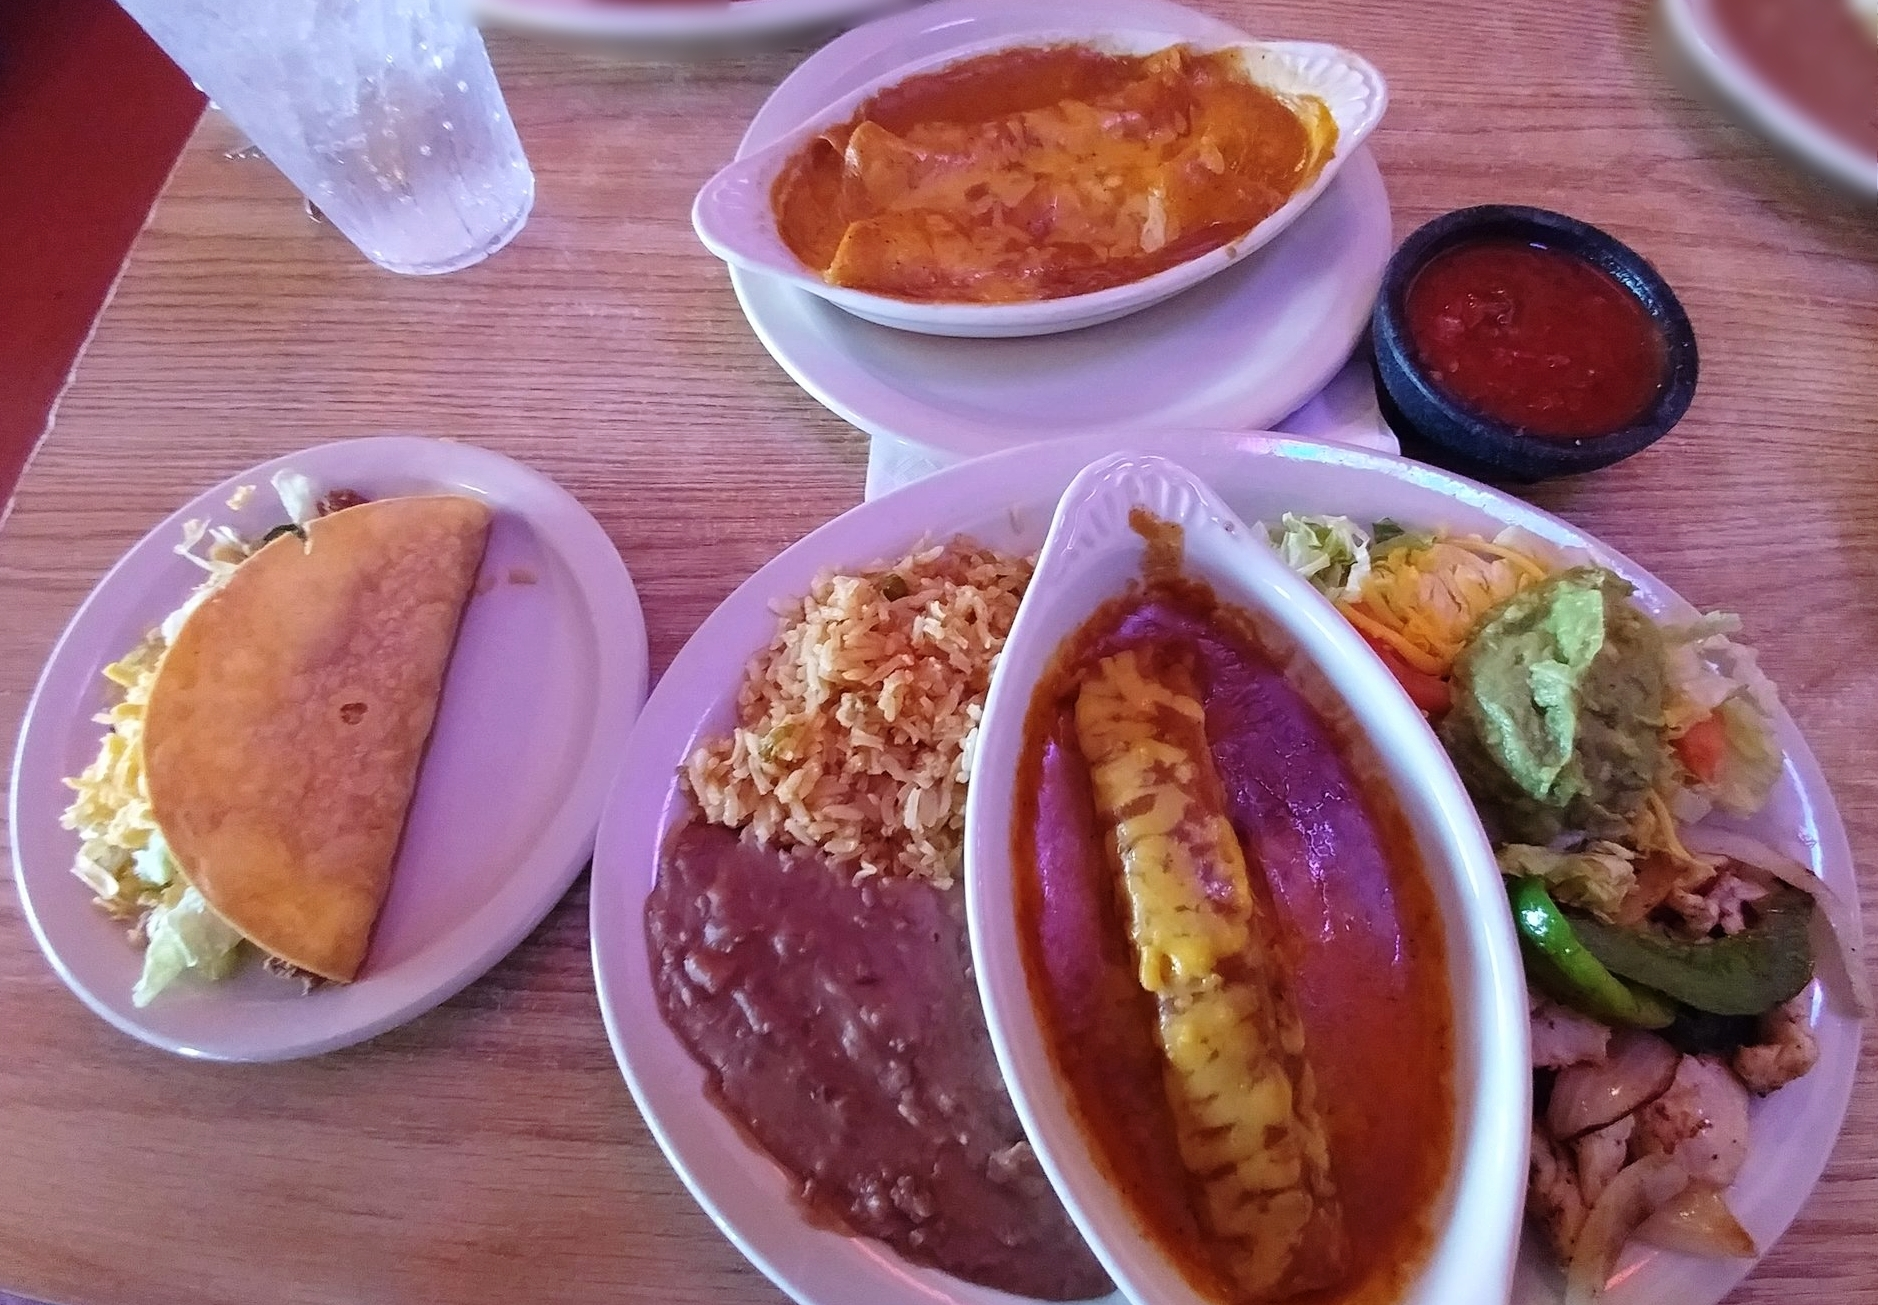 Super Combo - with two cheese enchiladas